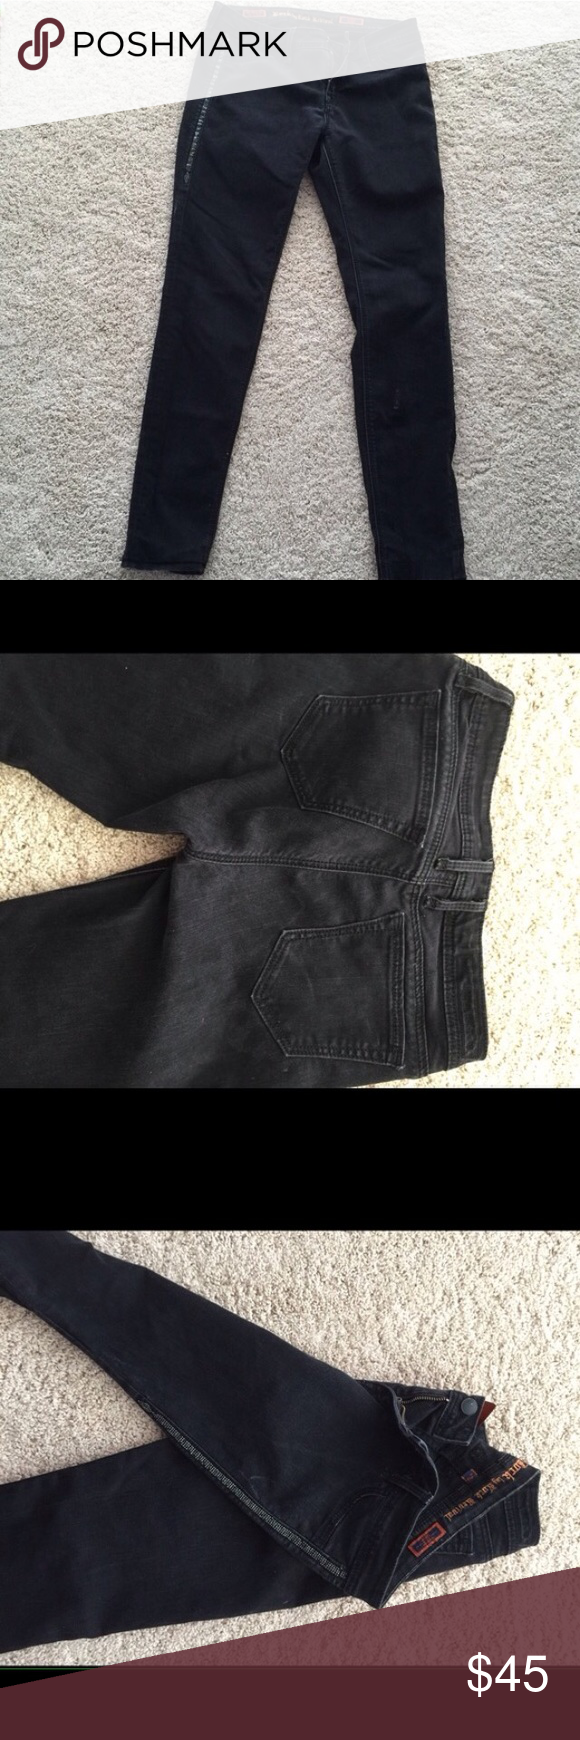 Rock revival Kathryn jeans Rock revival Kathryn jeans with rhinestone detailing on the sides Rock Revival Jeans Skinny